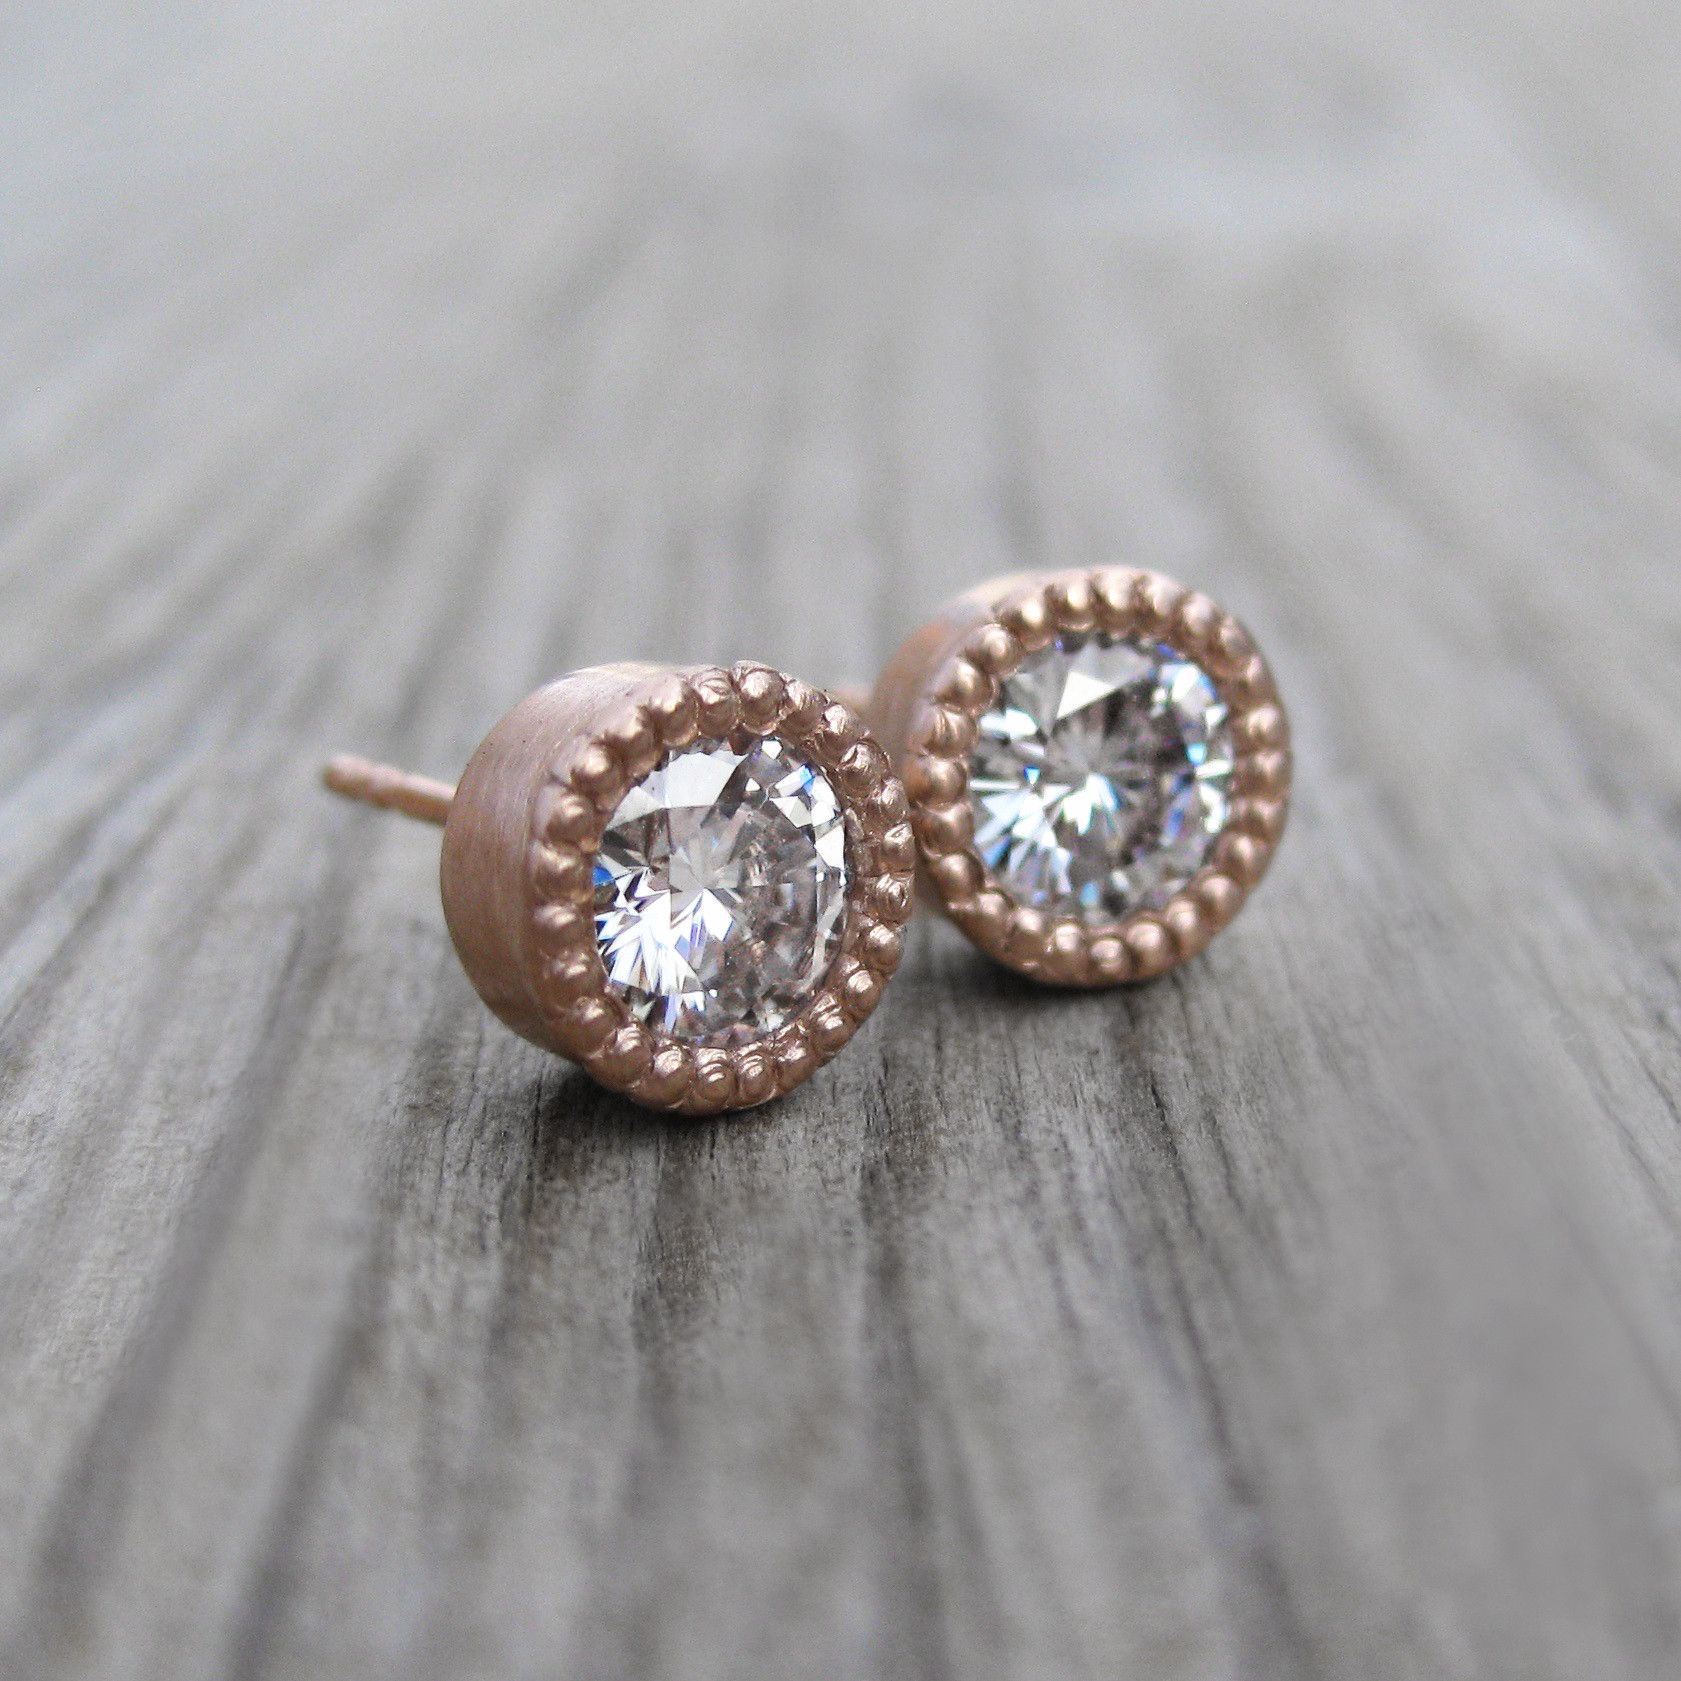 tgw white today stud jewelry brilliant charles earrings product overstock shipping forever watches colvard free gold moissanite